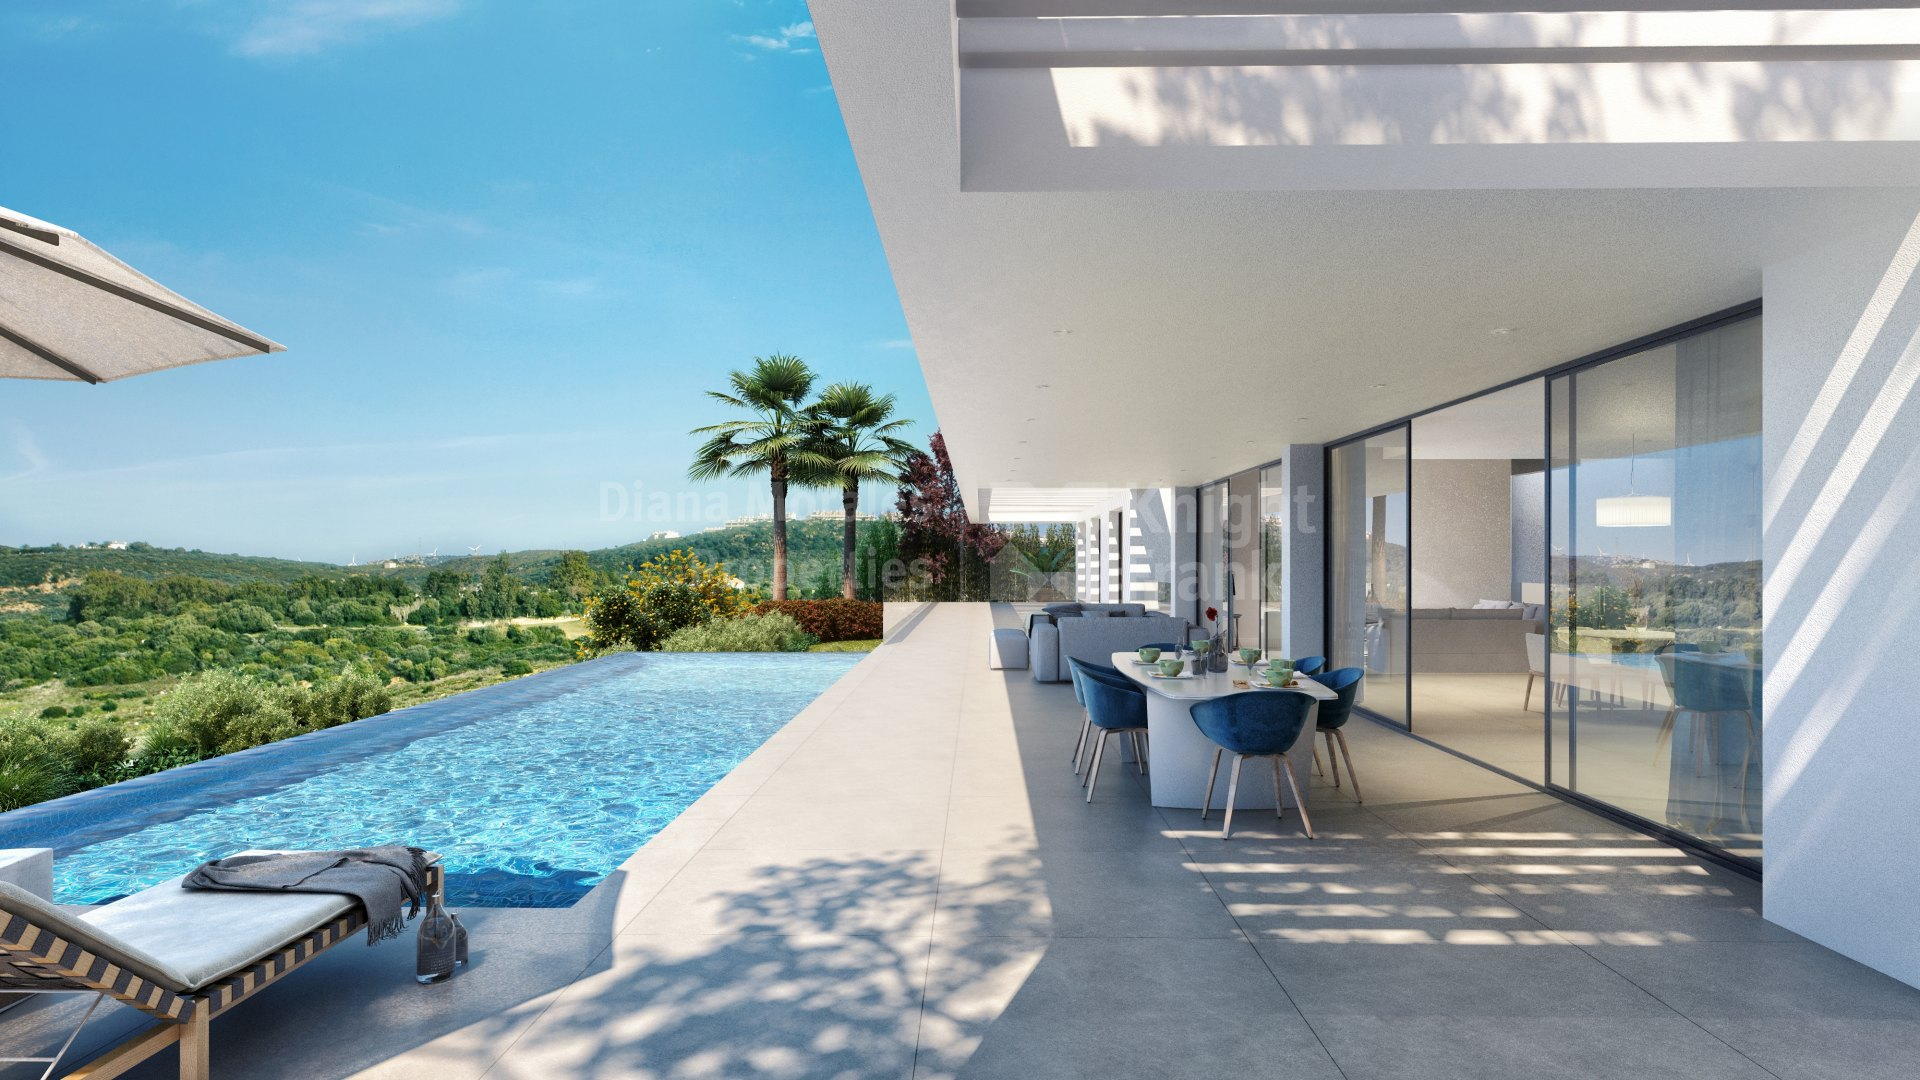 Los Flamingos Views - Luxury Modern Style Villas with Panoramic Sea Views